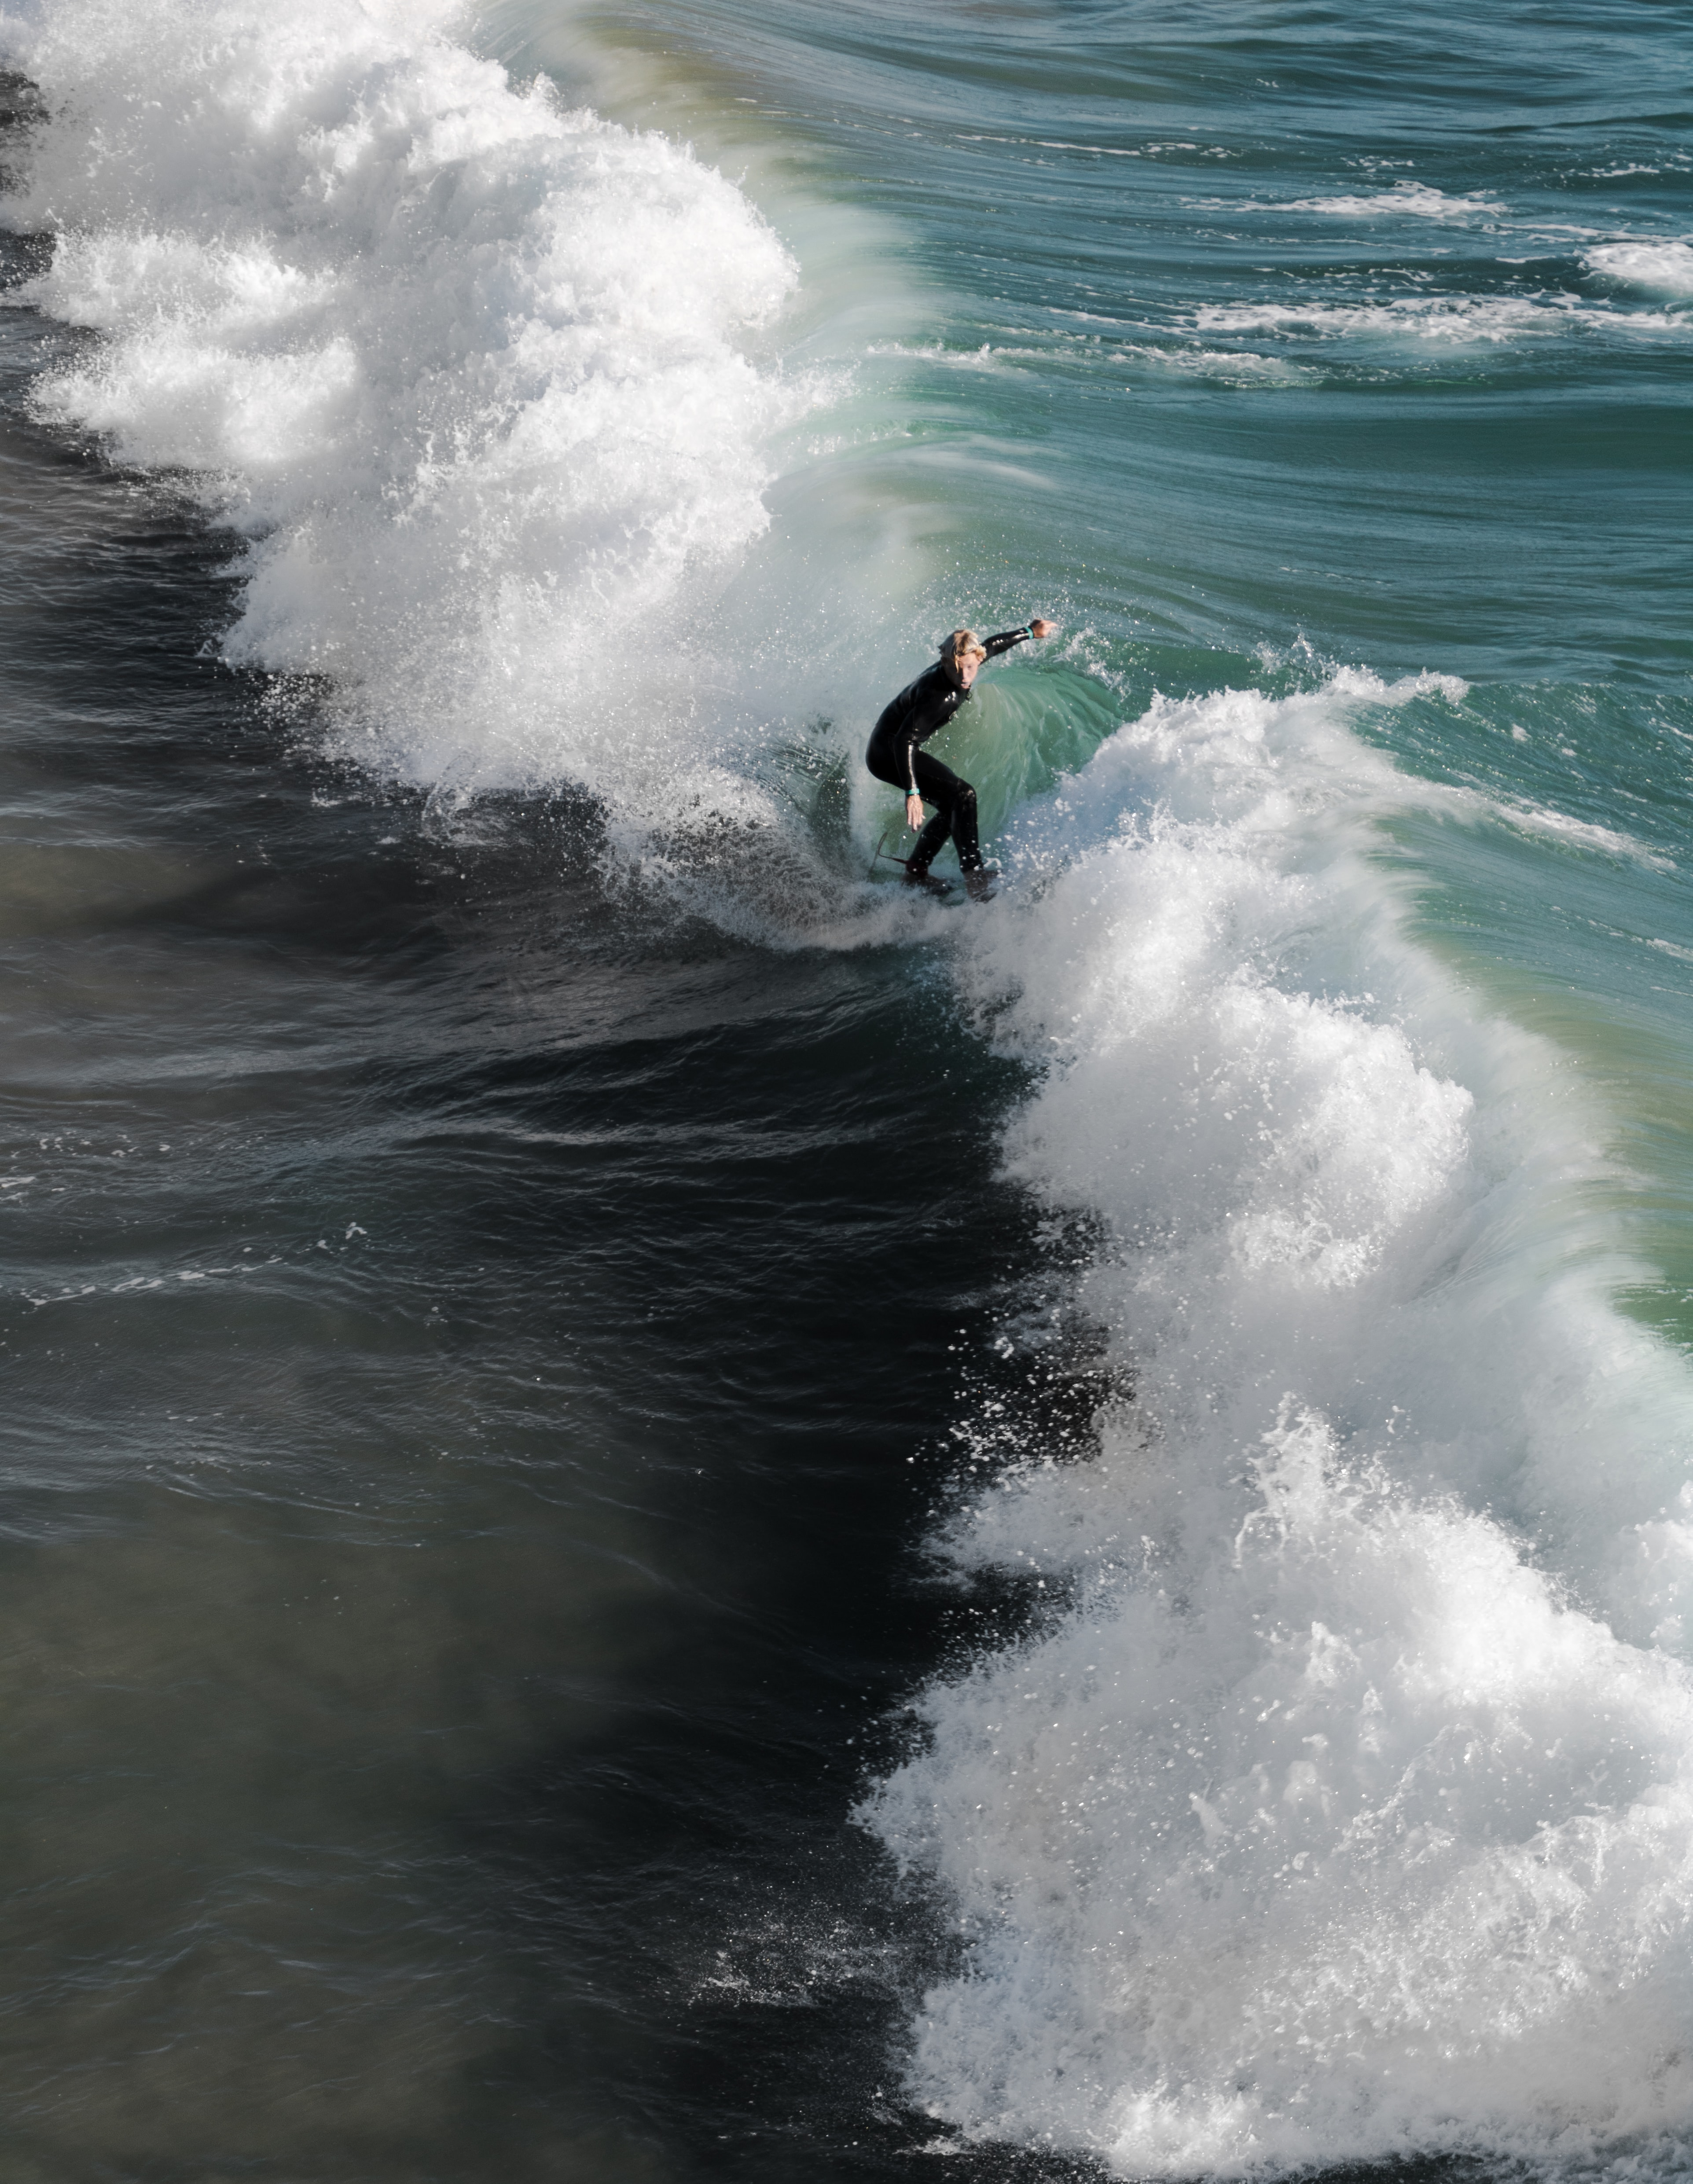 person surfing on sea waves at daytime